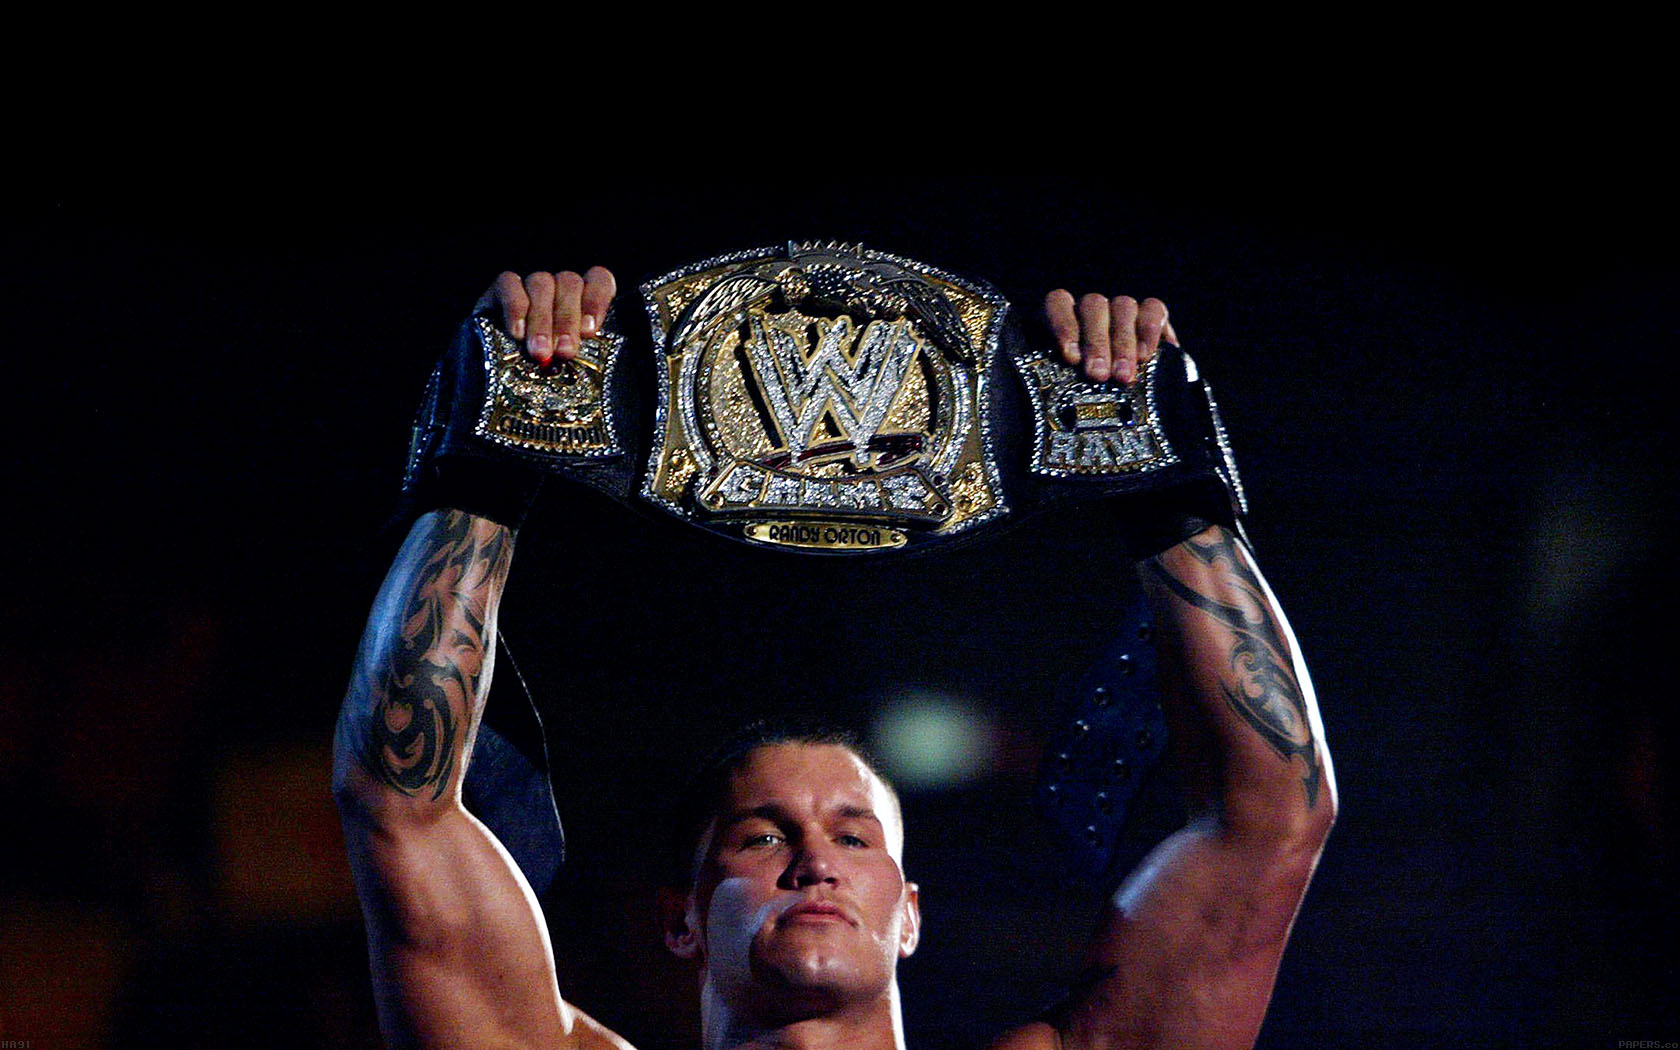 Ipad Wallpaper Fall Ha91 Wallpaper Randy Orton With Belt Wwe Papers Co